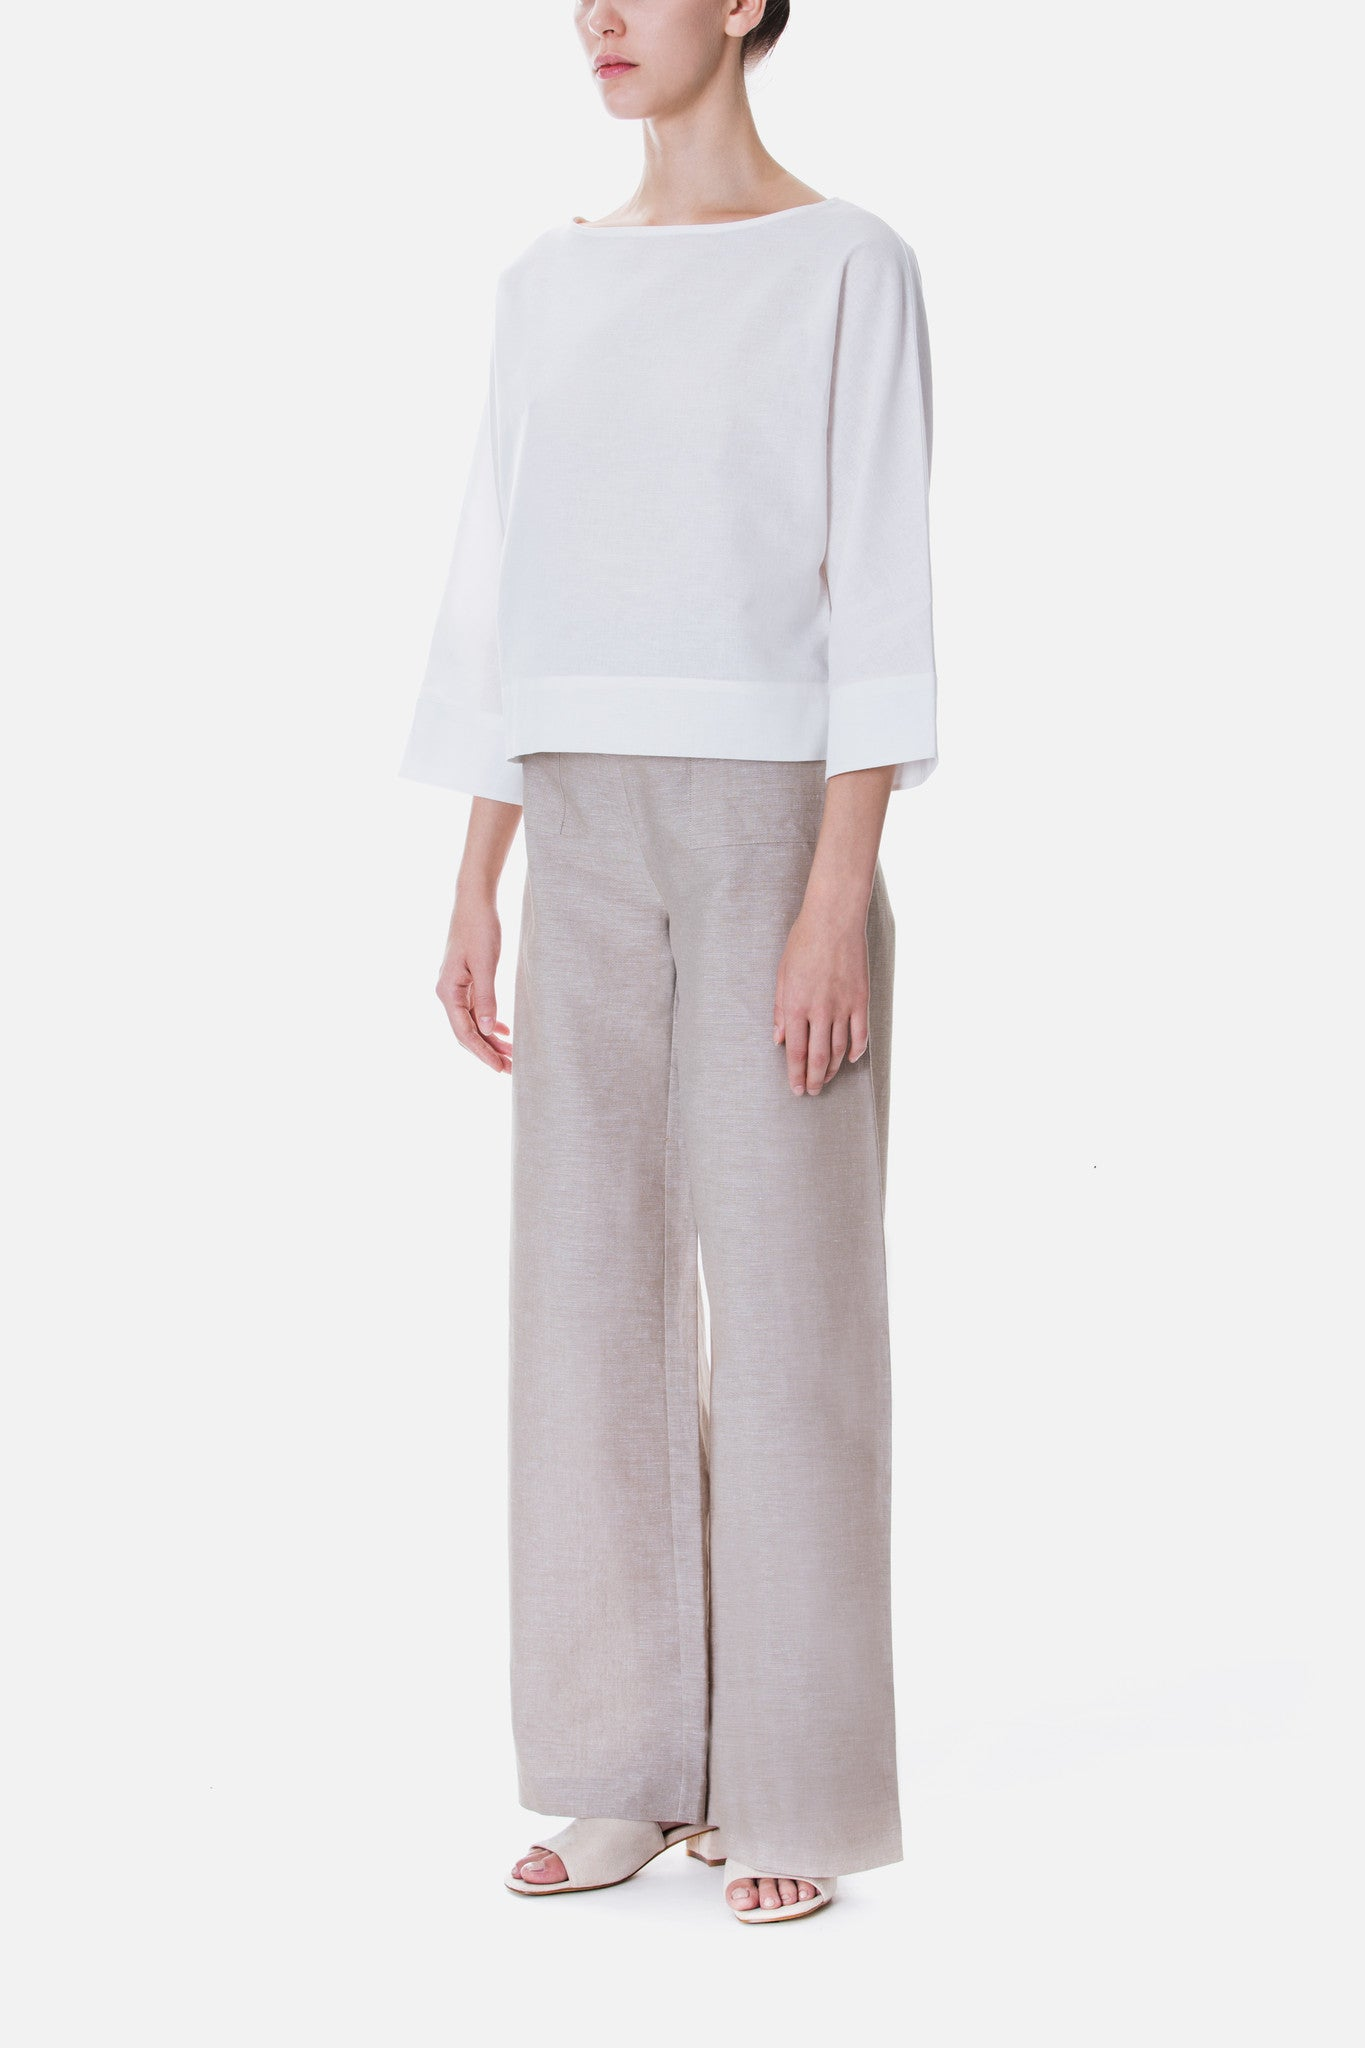 WIDE NECK LINEN TOP